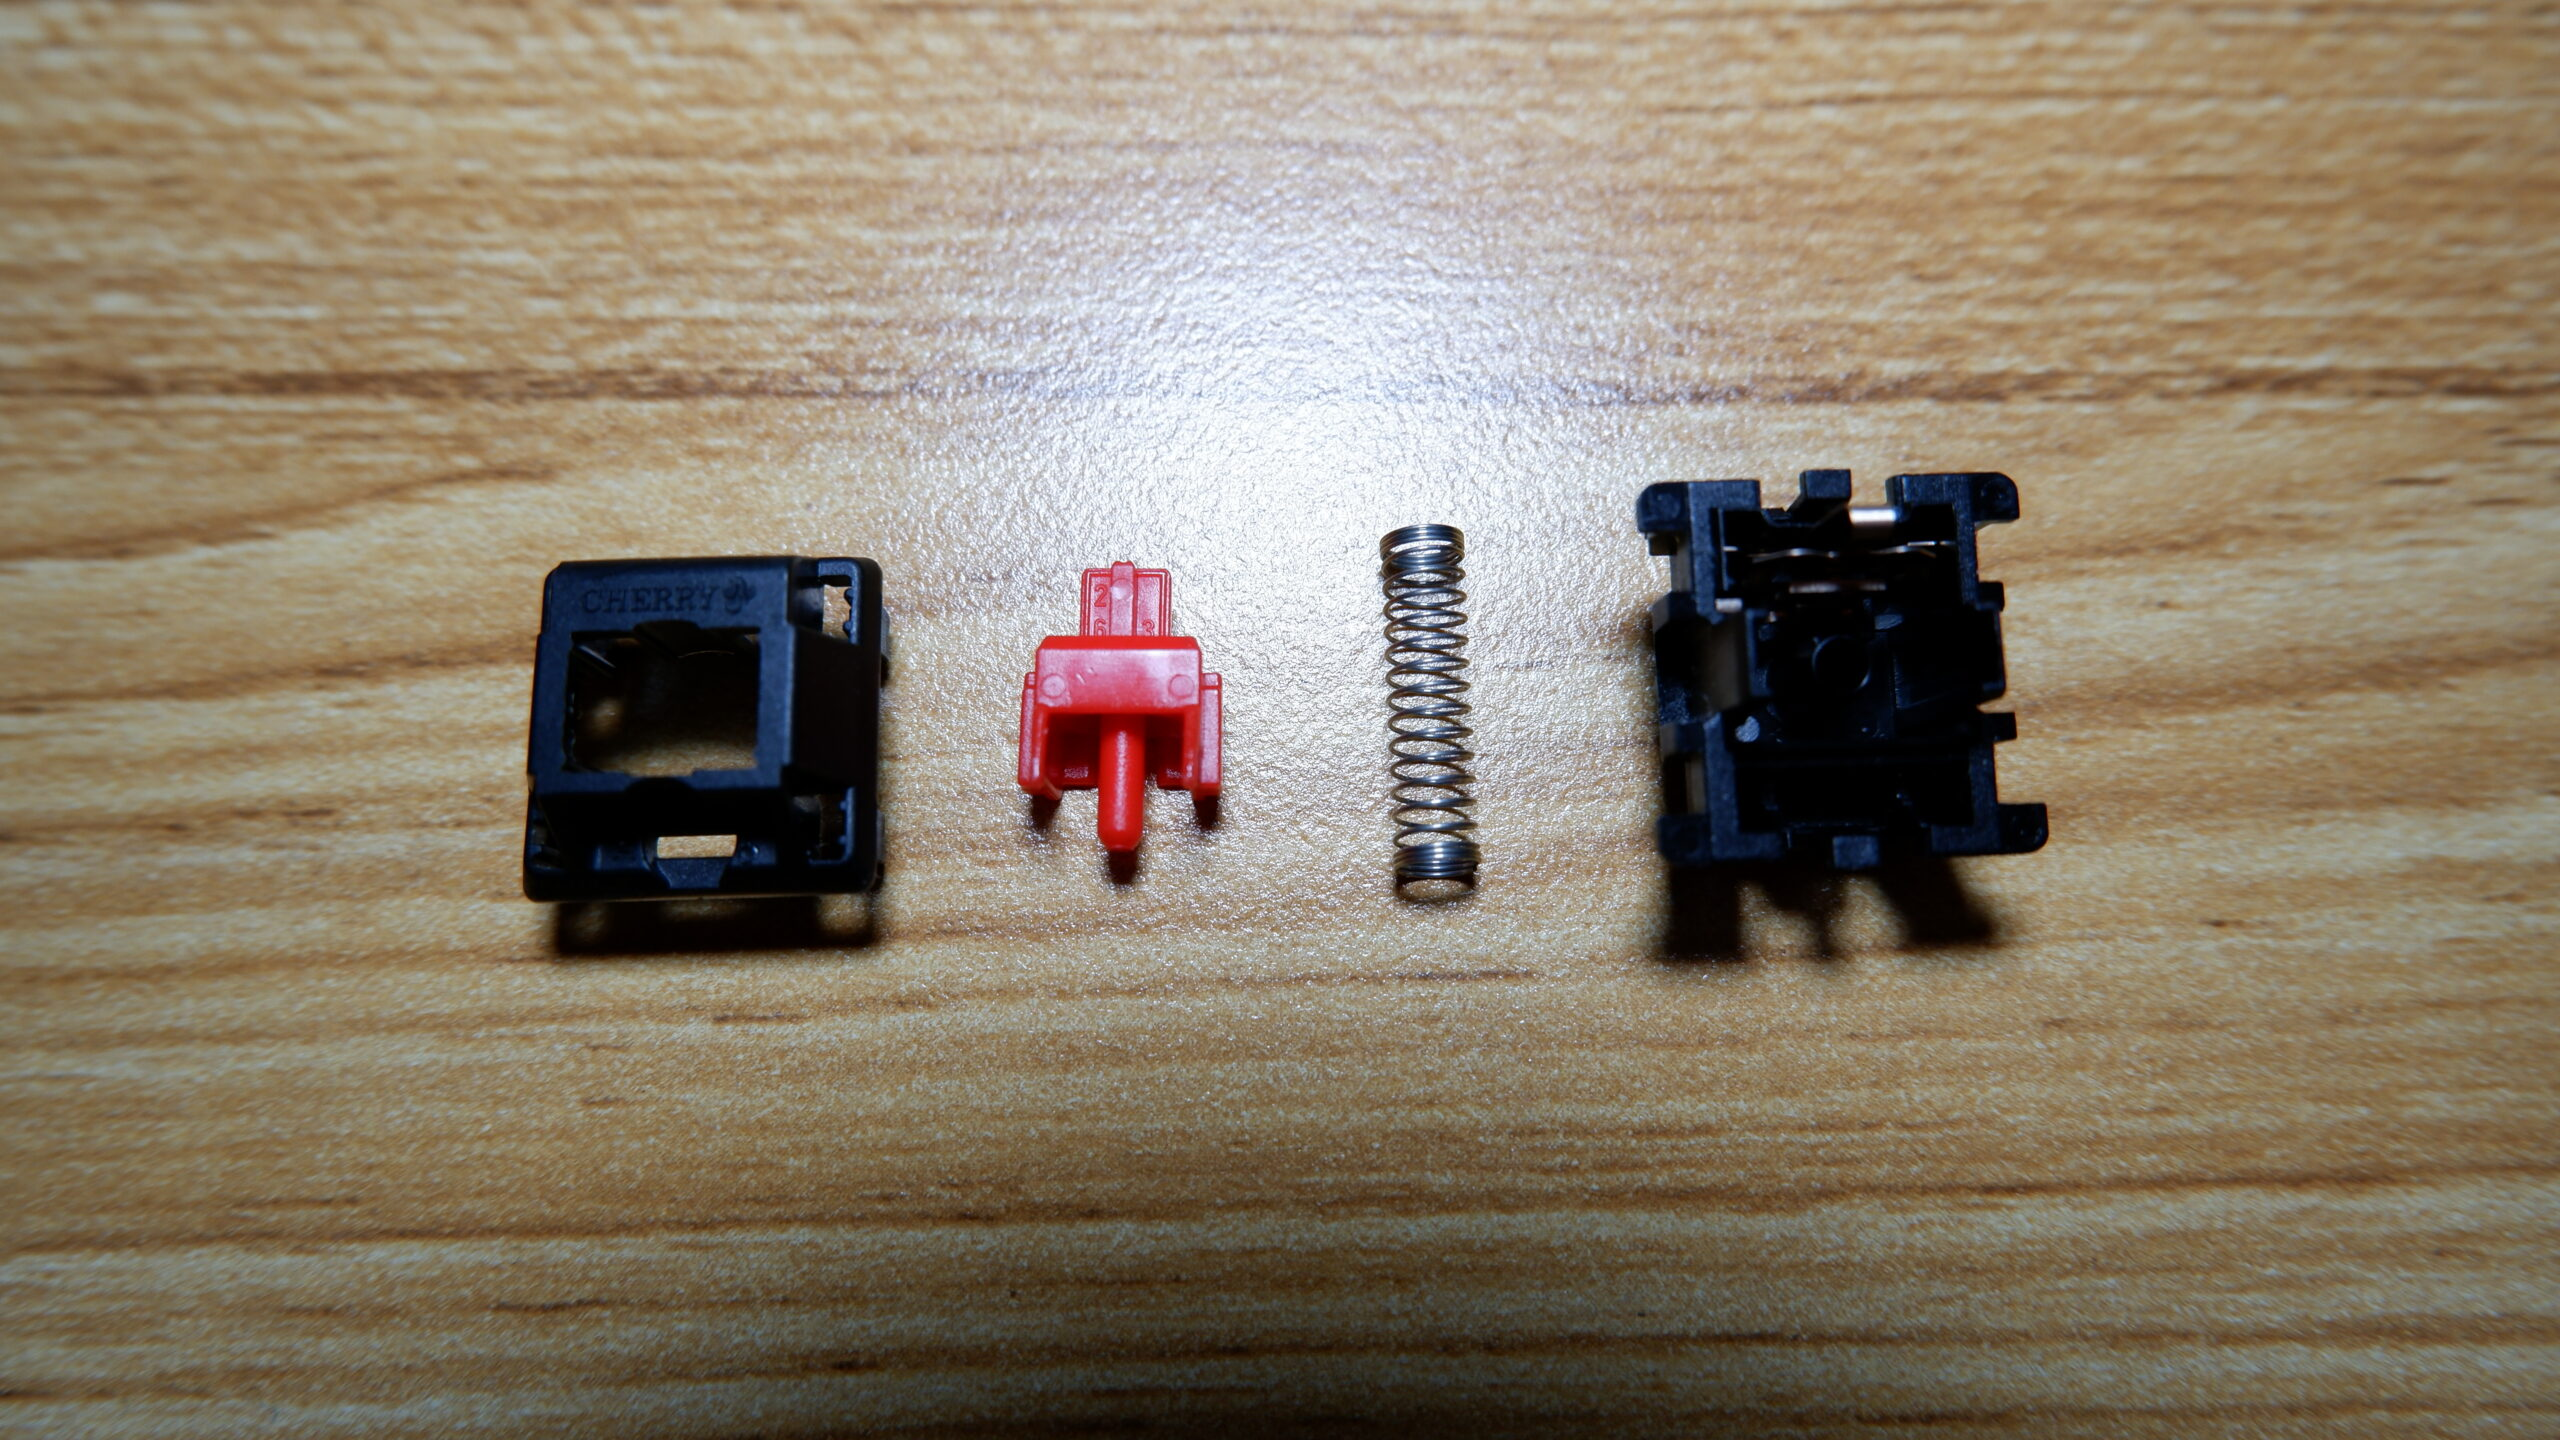 Cherry MX Red switch disassembled